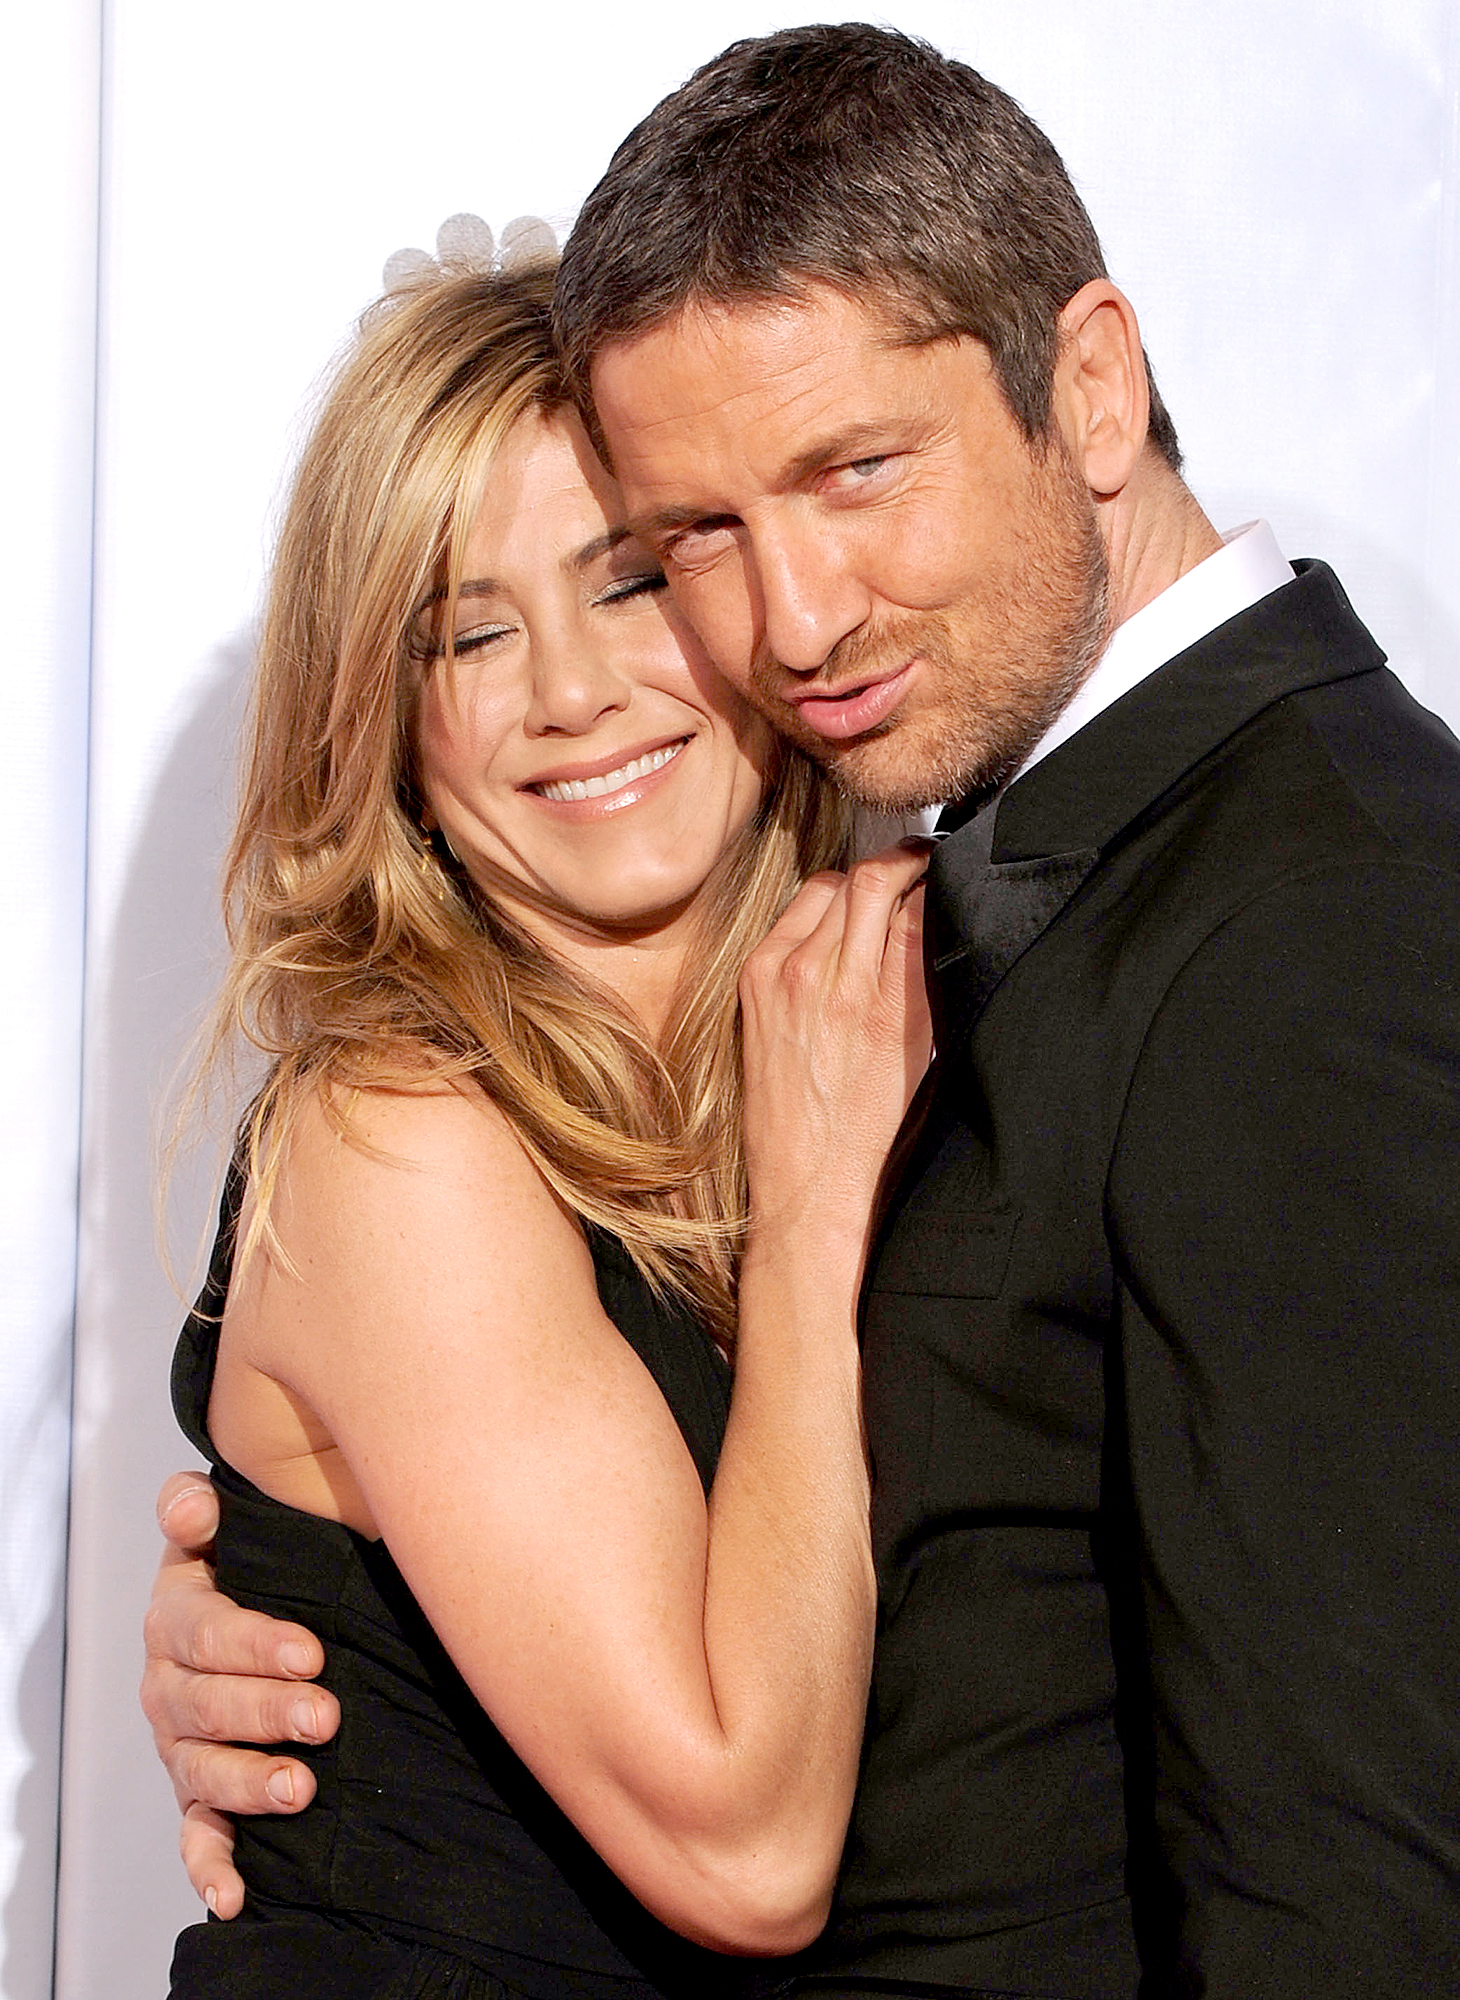 Who is jennifer aniston dating now